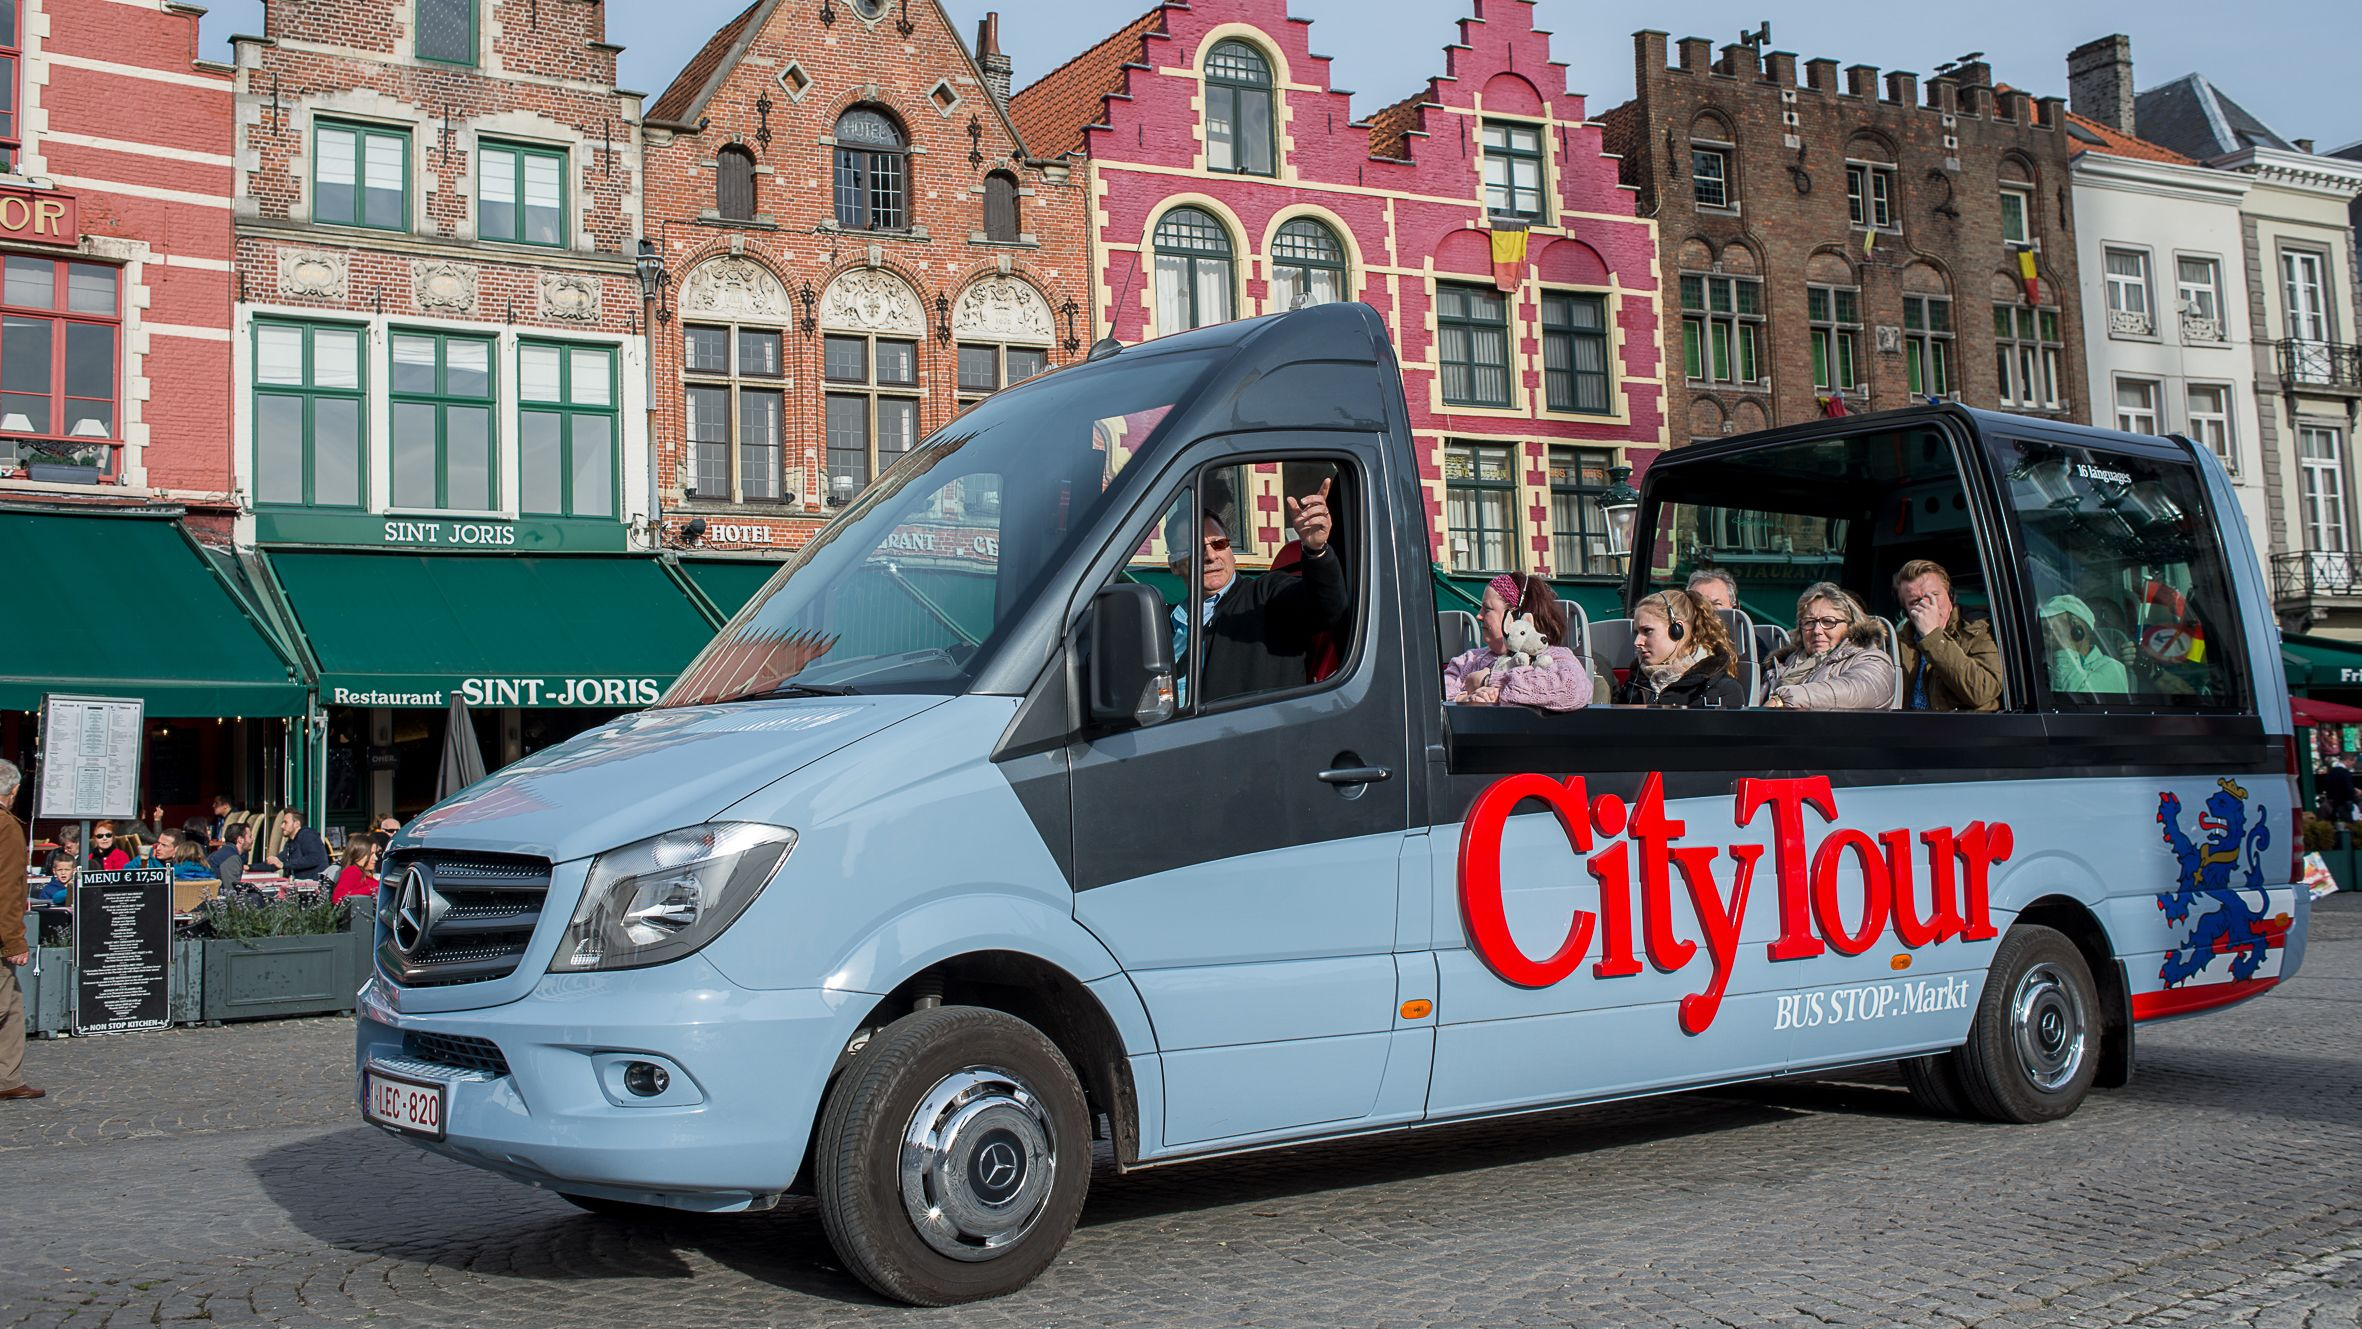 City Tour bus in town